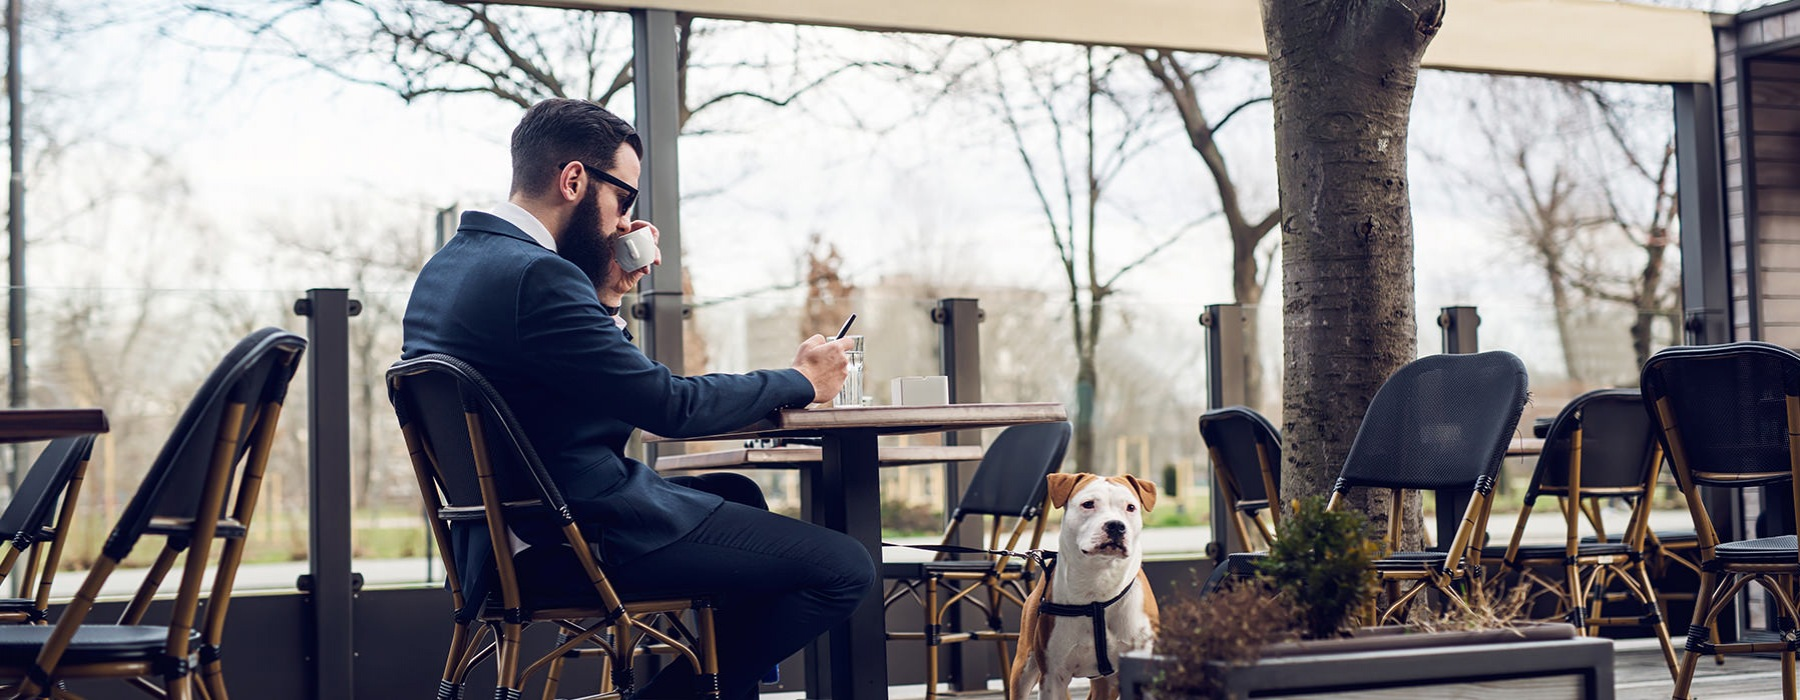 man drinking coffee with dog